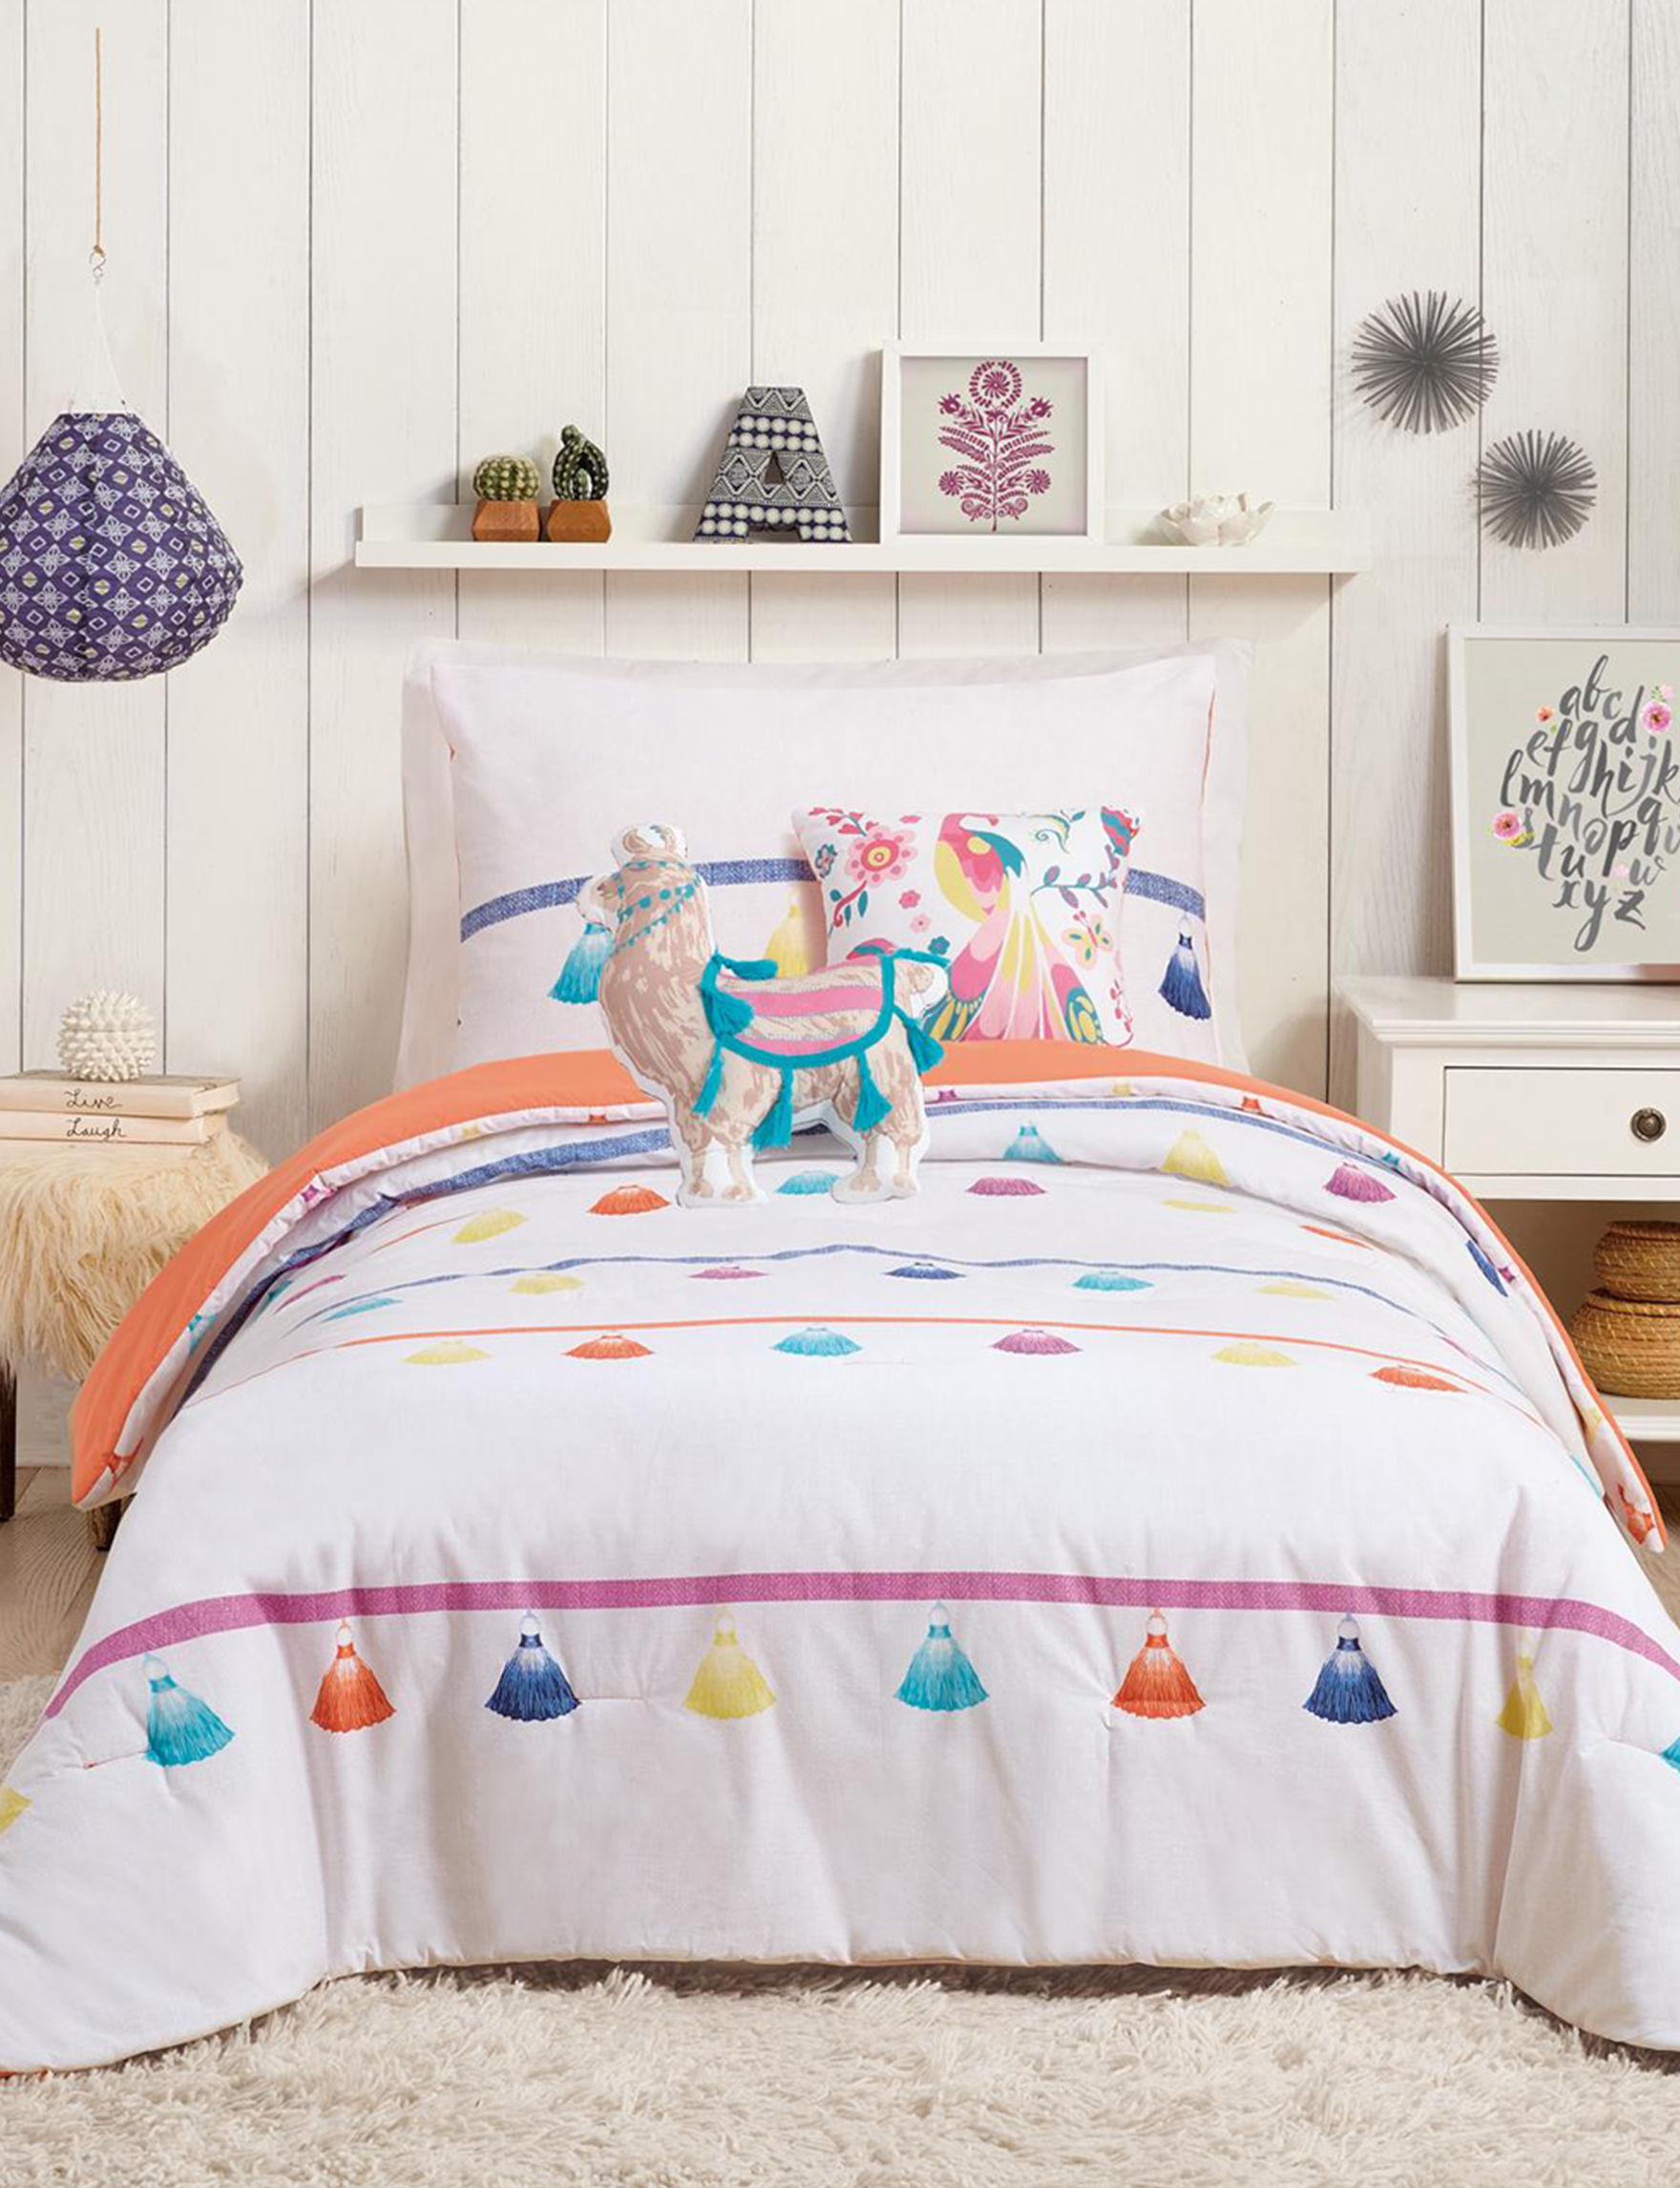 Urban Playground Coral Comforters & Comforter Sets